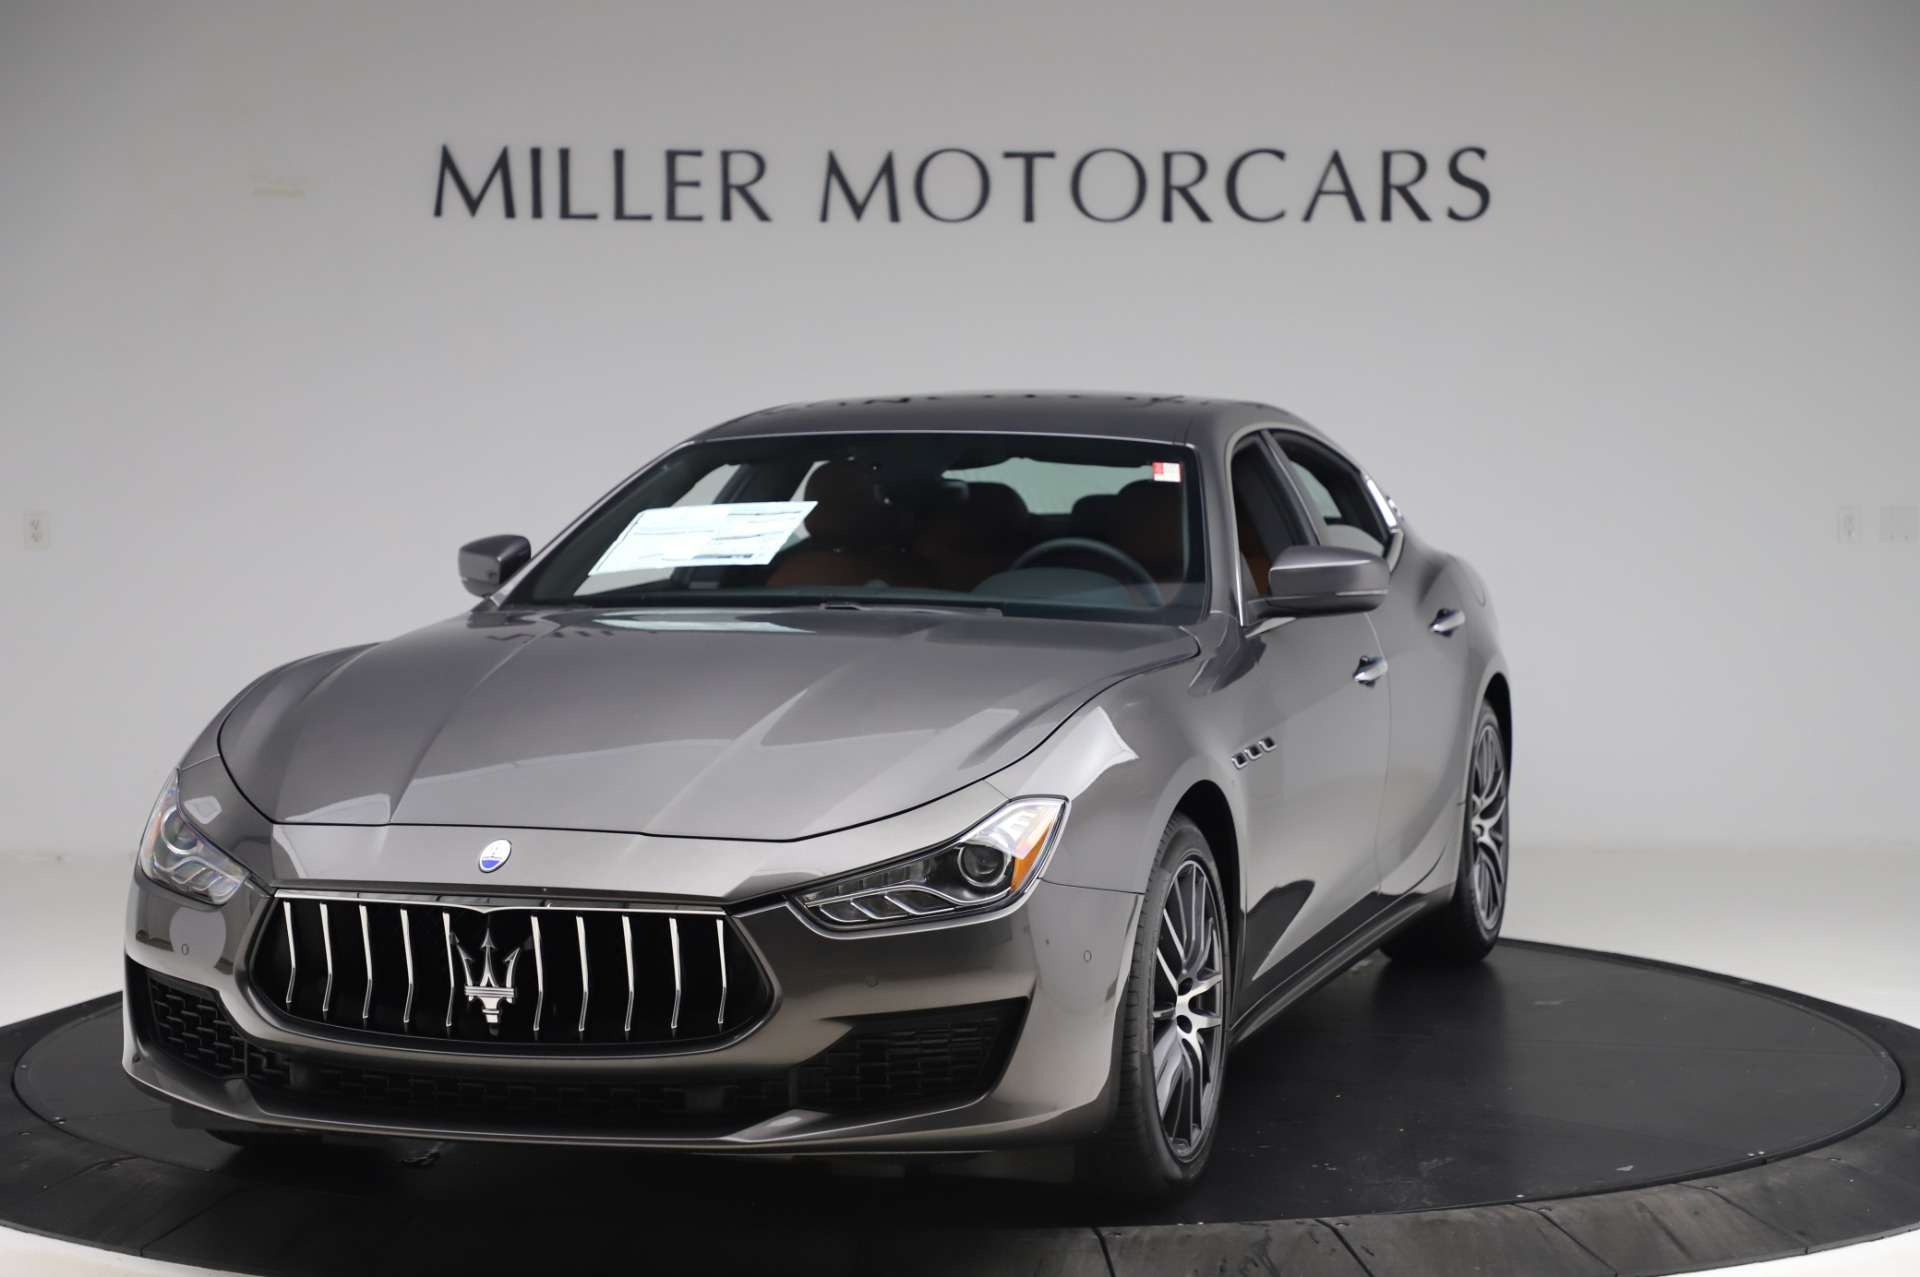 New 2020 Maserati Ghibli S Q4 for sale $82,385 at Bentley Greenwich in Greenwich CT 06830 1